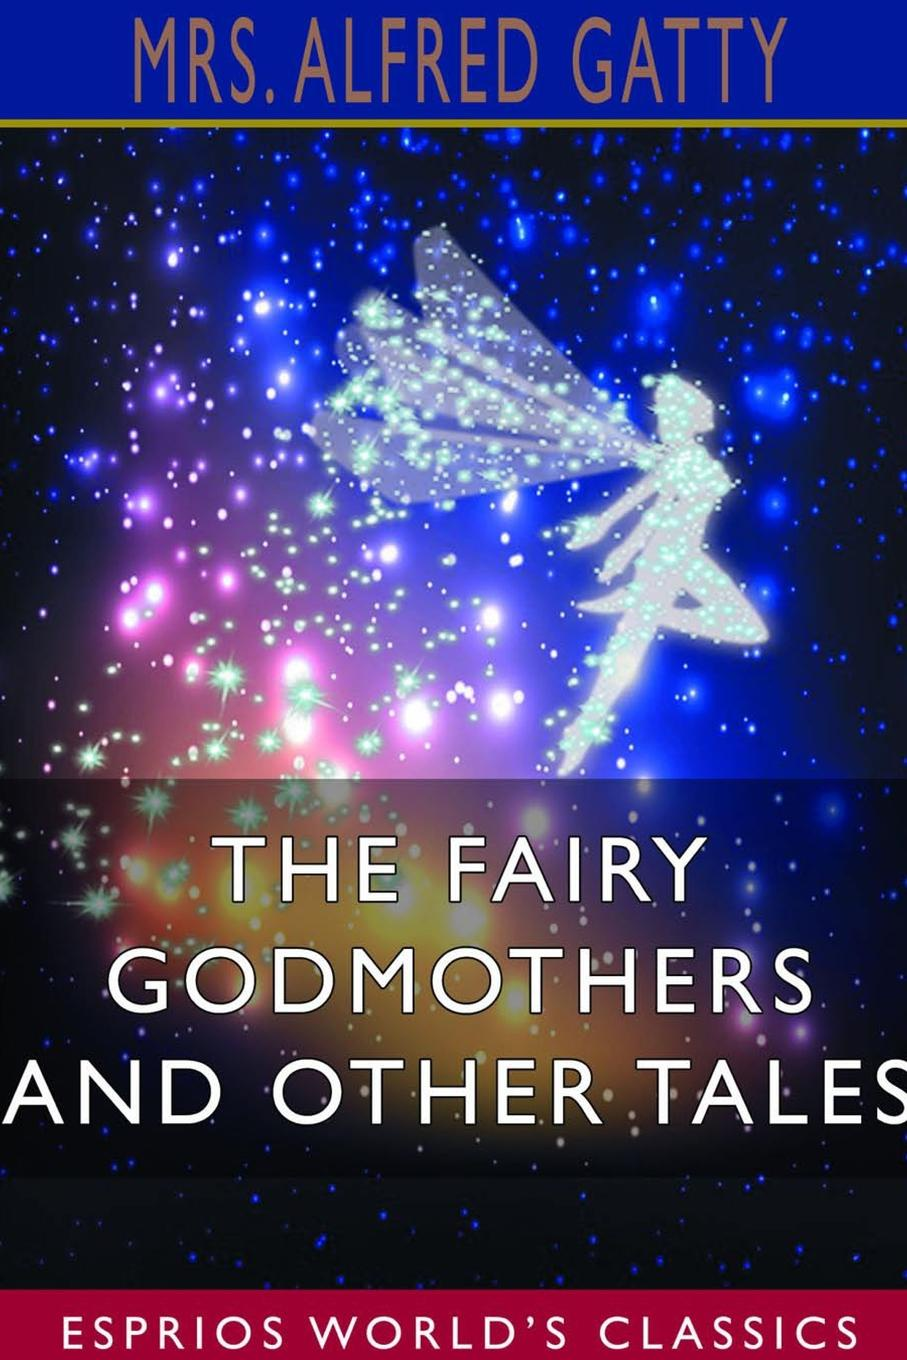 Mrs. Alfred Gatty The Fairy Godmothers and Other Tales (Esprios Classics) mrs barbauld charles journey to france and other tales